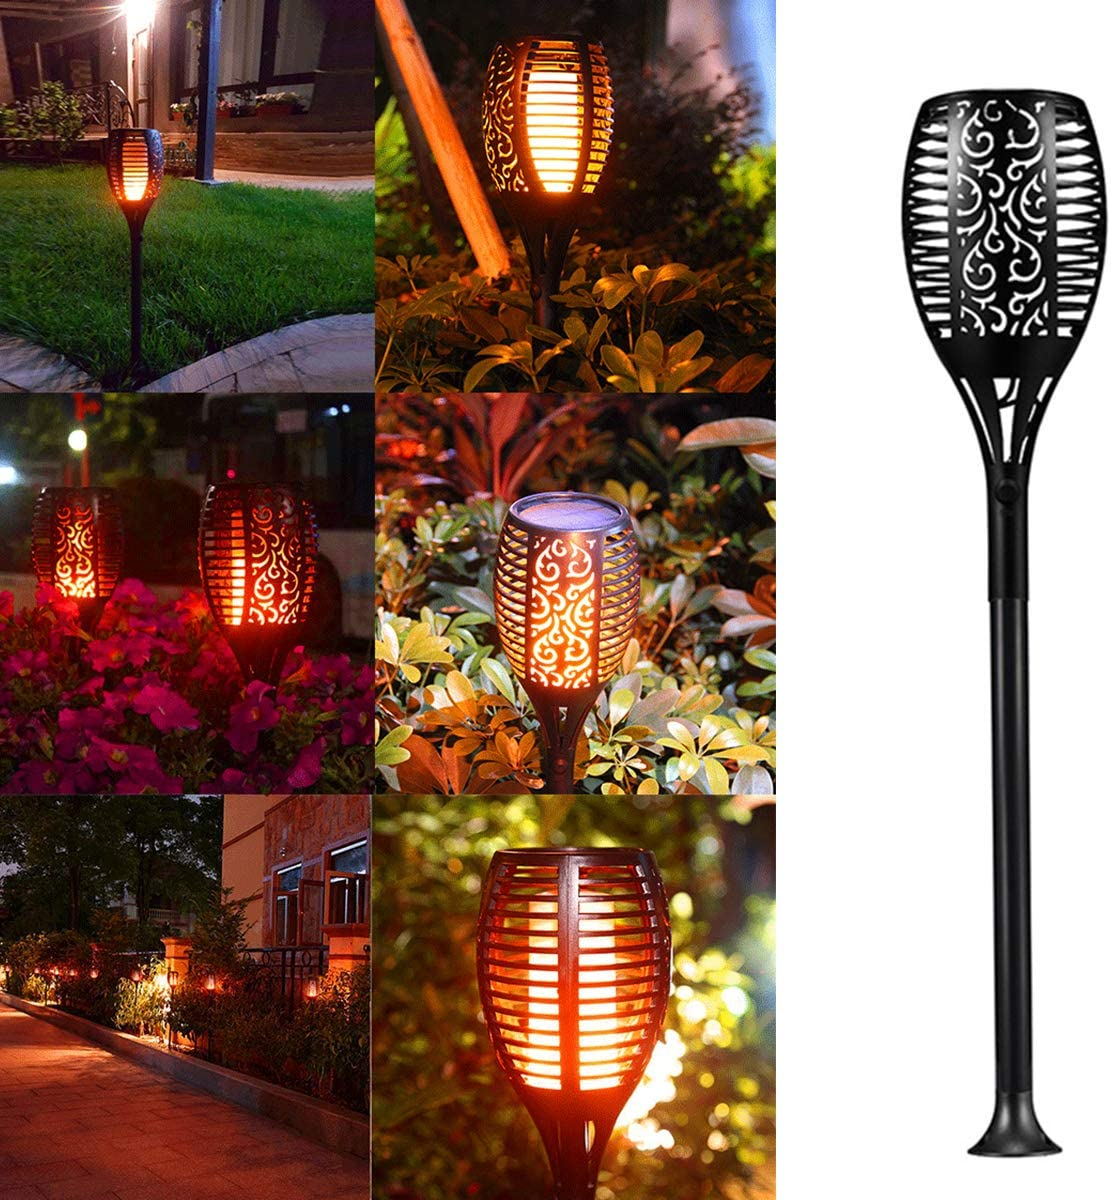 FAMKIT 1pcs Solar Torch Light Outdoor wholesale 96 Torches 5% OFF Led Tiki with